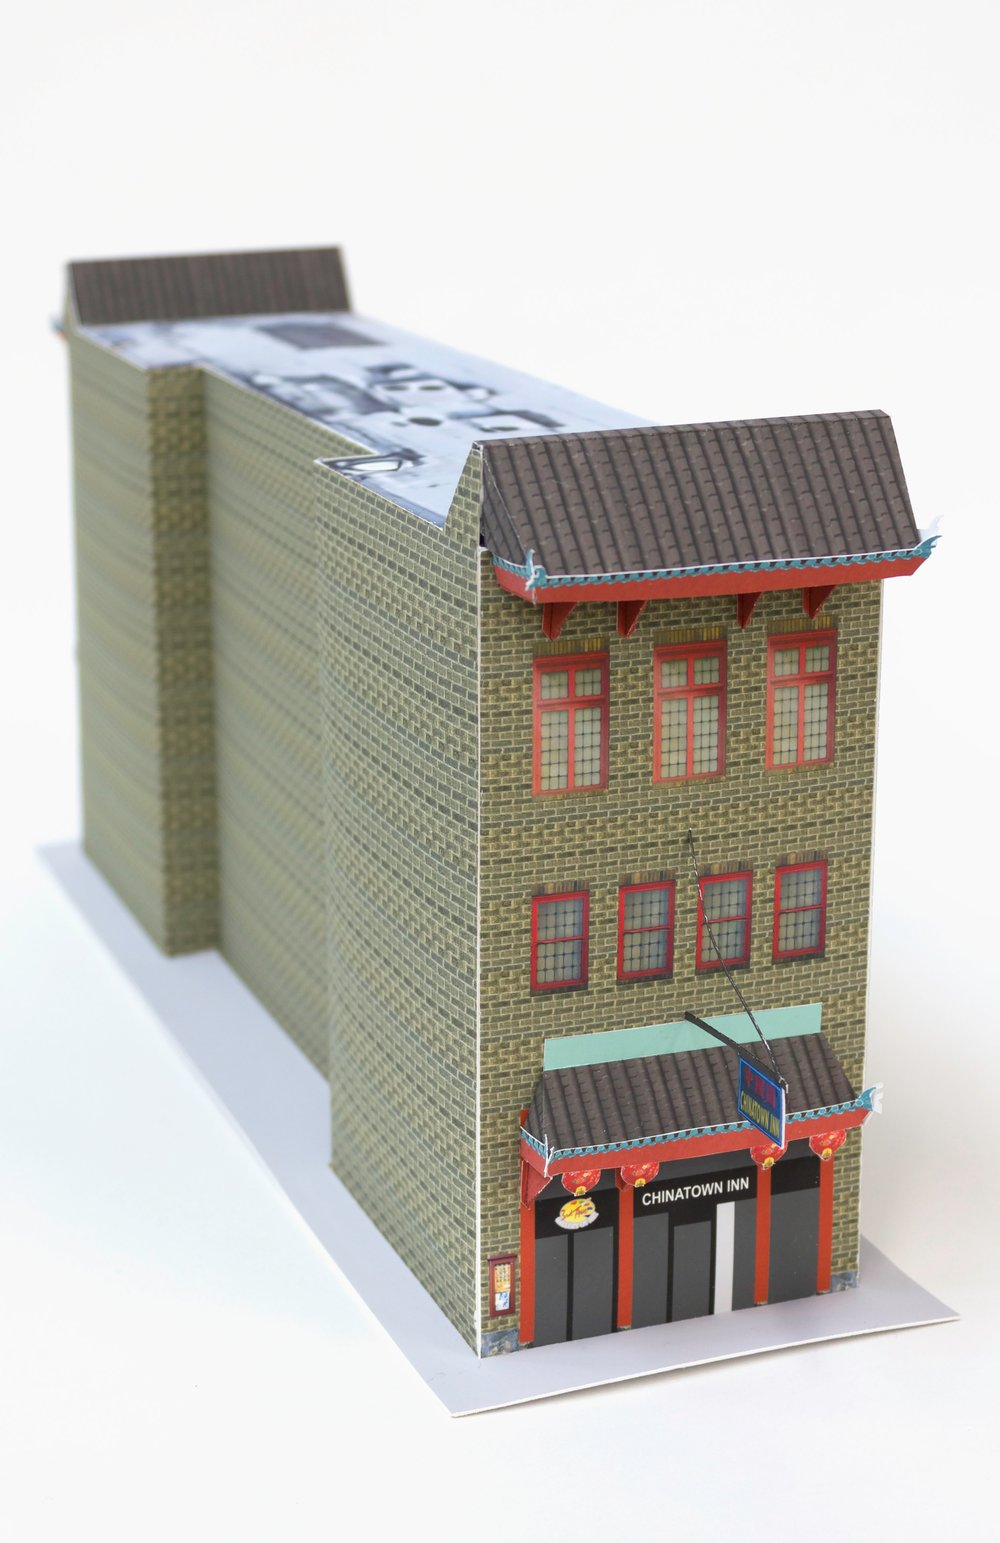 Pittsburgh's Chinatown - This is a DIY paper craft model of 520 Third Ave, the only remaining building with a physical trace of this city's historic Chinatown.Pittsburgh's Chinatown formed in the late 1800's, a small part of the large migration of people traveling west during the Gold Rush. At its height in the 1920s, some 500 residents and 25 businesses called Second and Third Avenues between Ross and Grant Street their home. Chinatown's decline is due in part because the construction of the boulevard of the Allies that bisected the neighborhood.Download and build your own here.